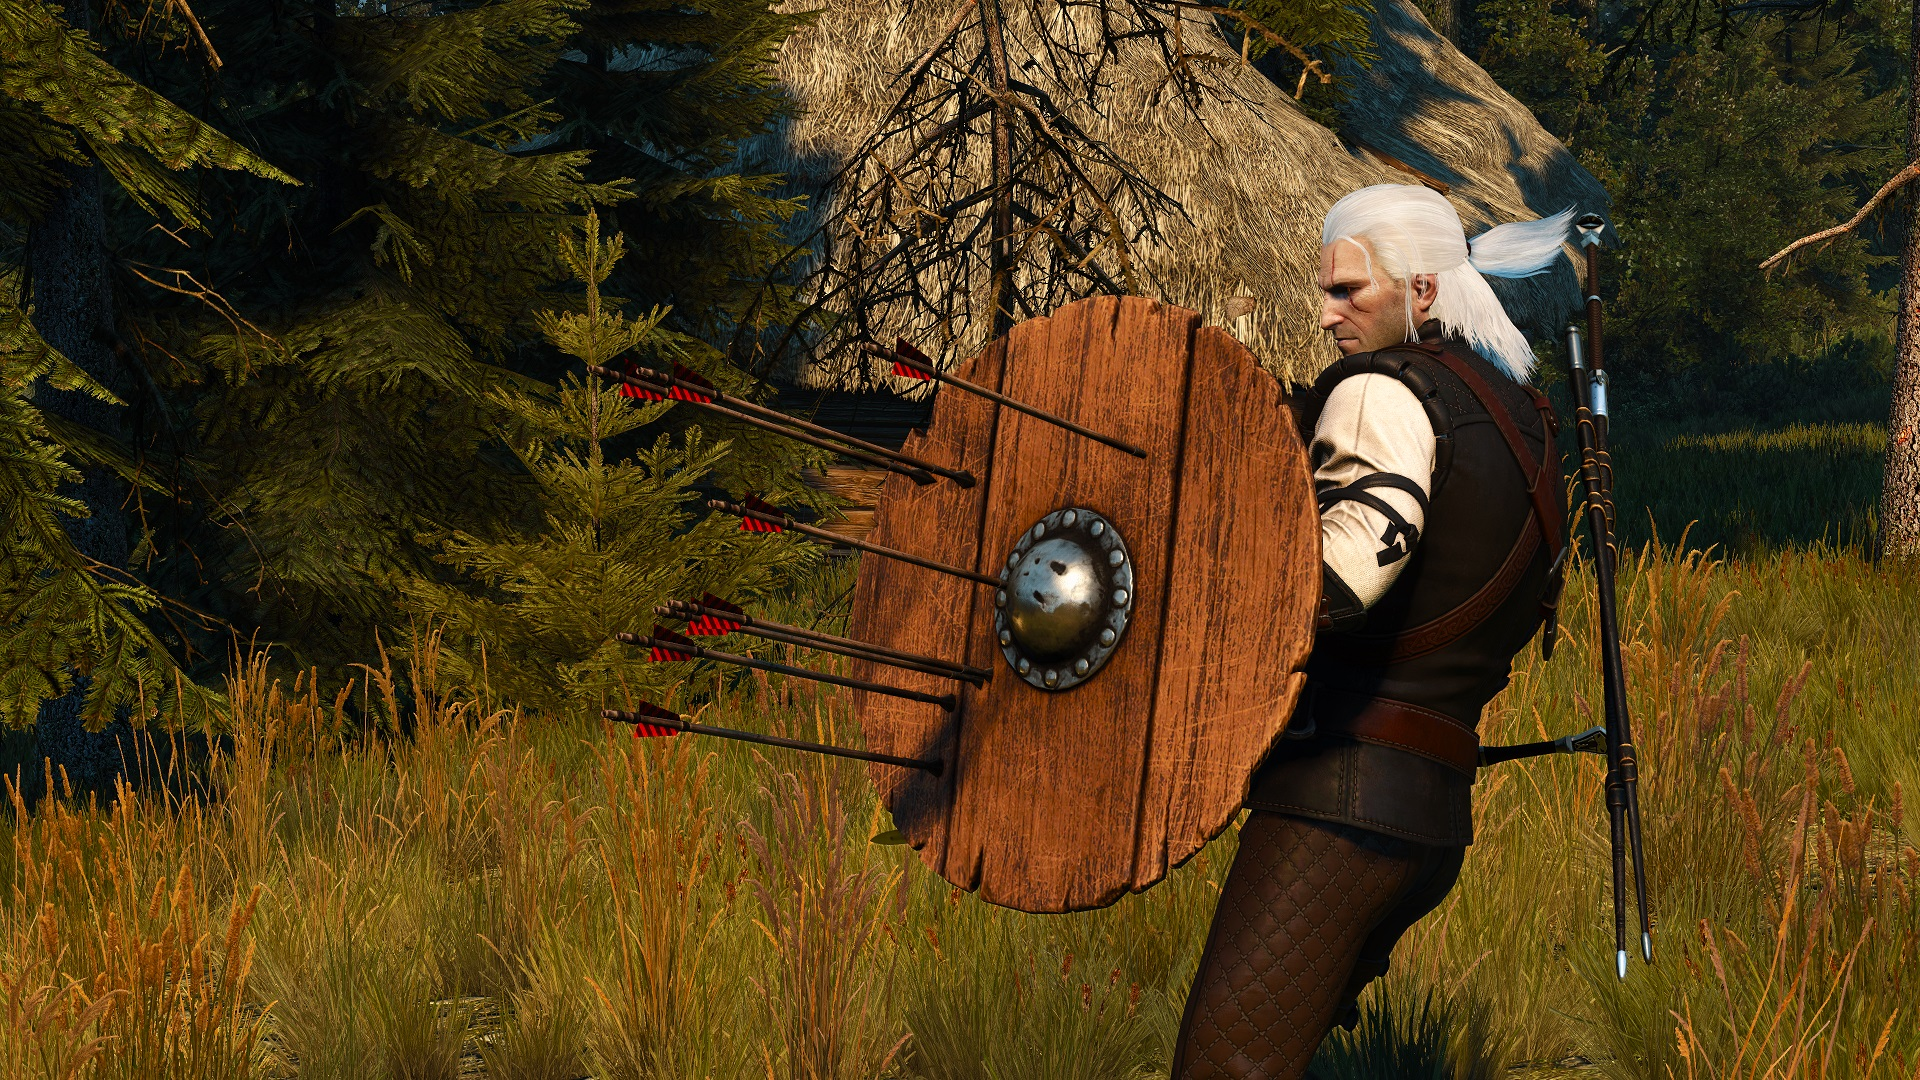 This Witcher 3 mod gives Geralt a shield - VG247